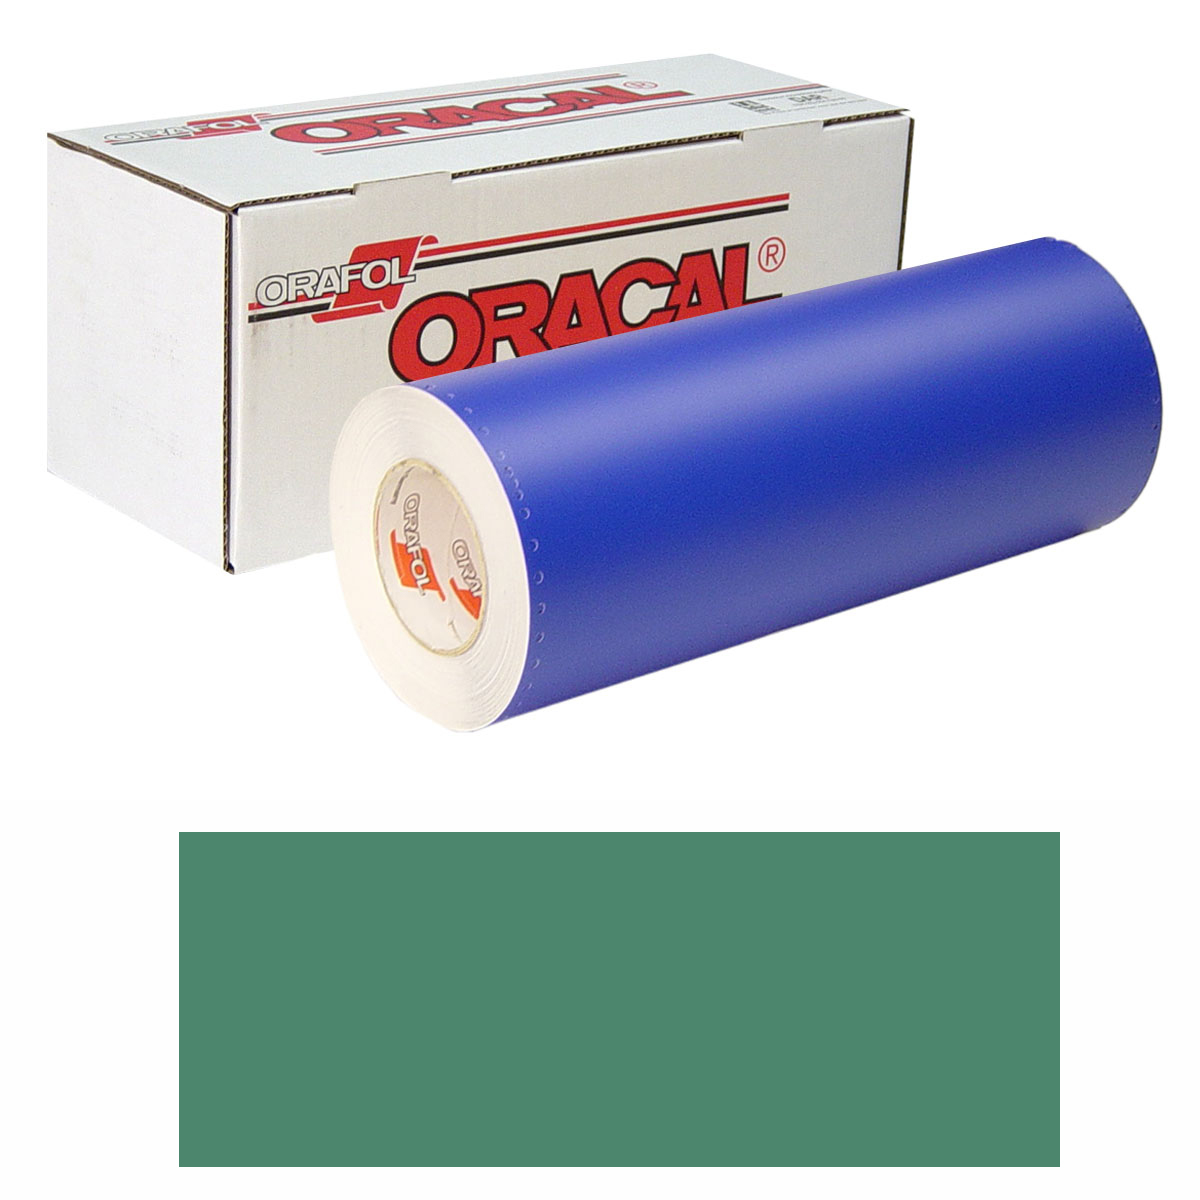 ORACAL 8300 Unp 24In X 10Yd 060 Dark Green